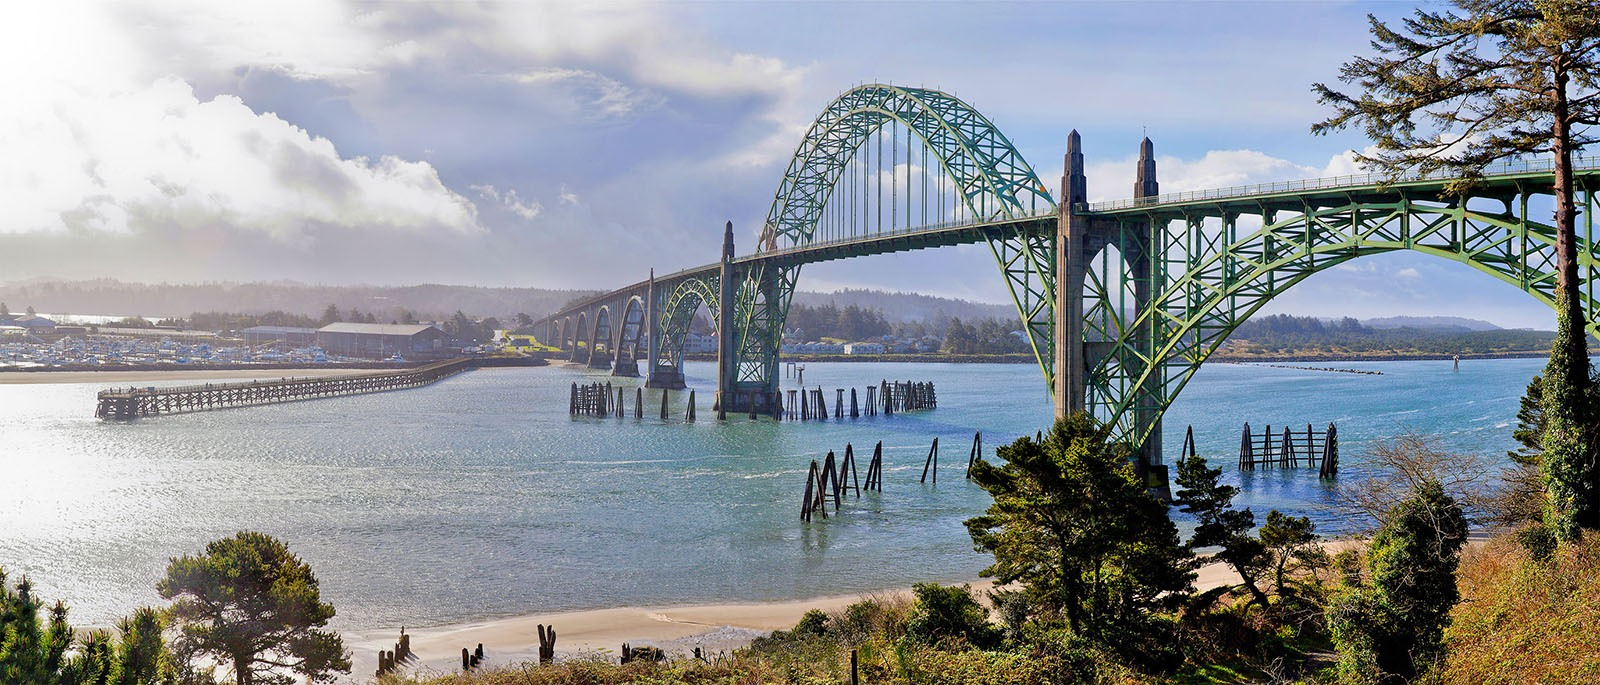 Yaquina-Bay-Bridge-